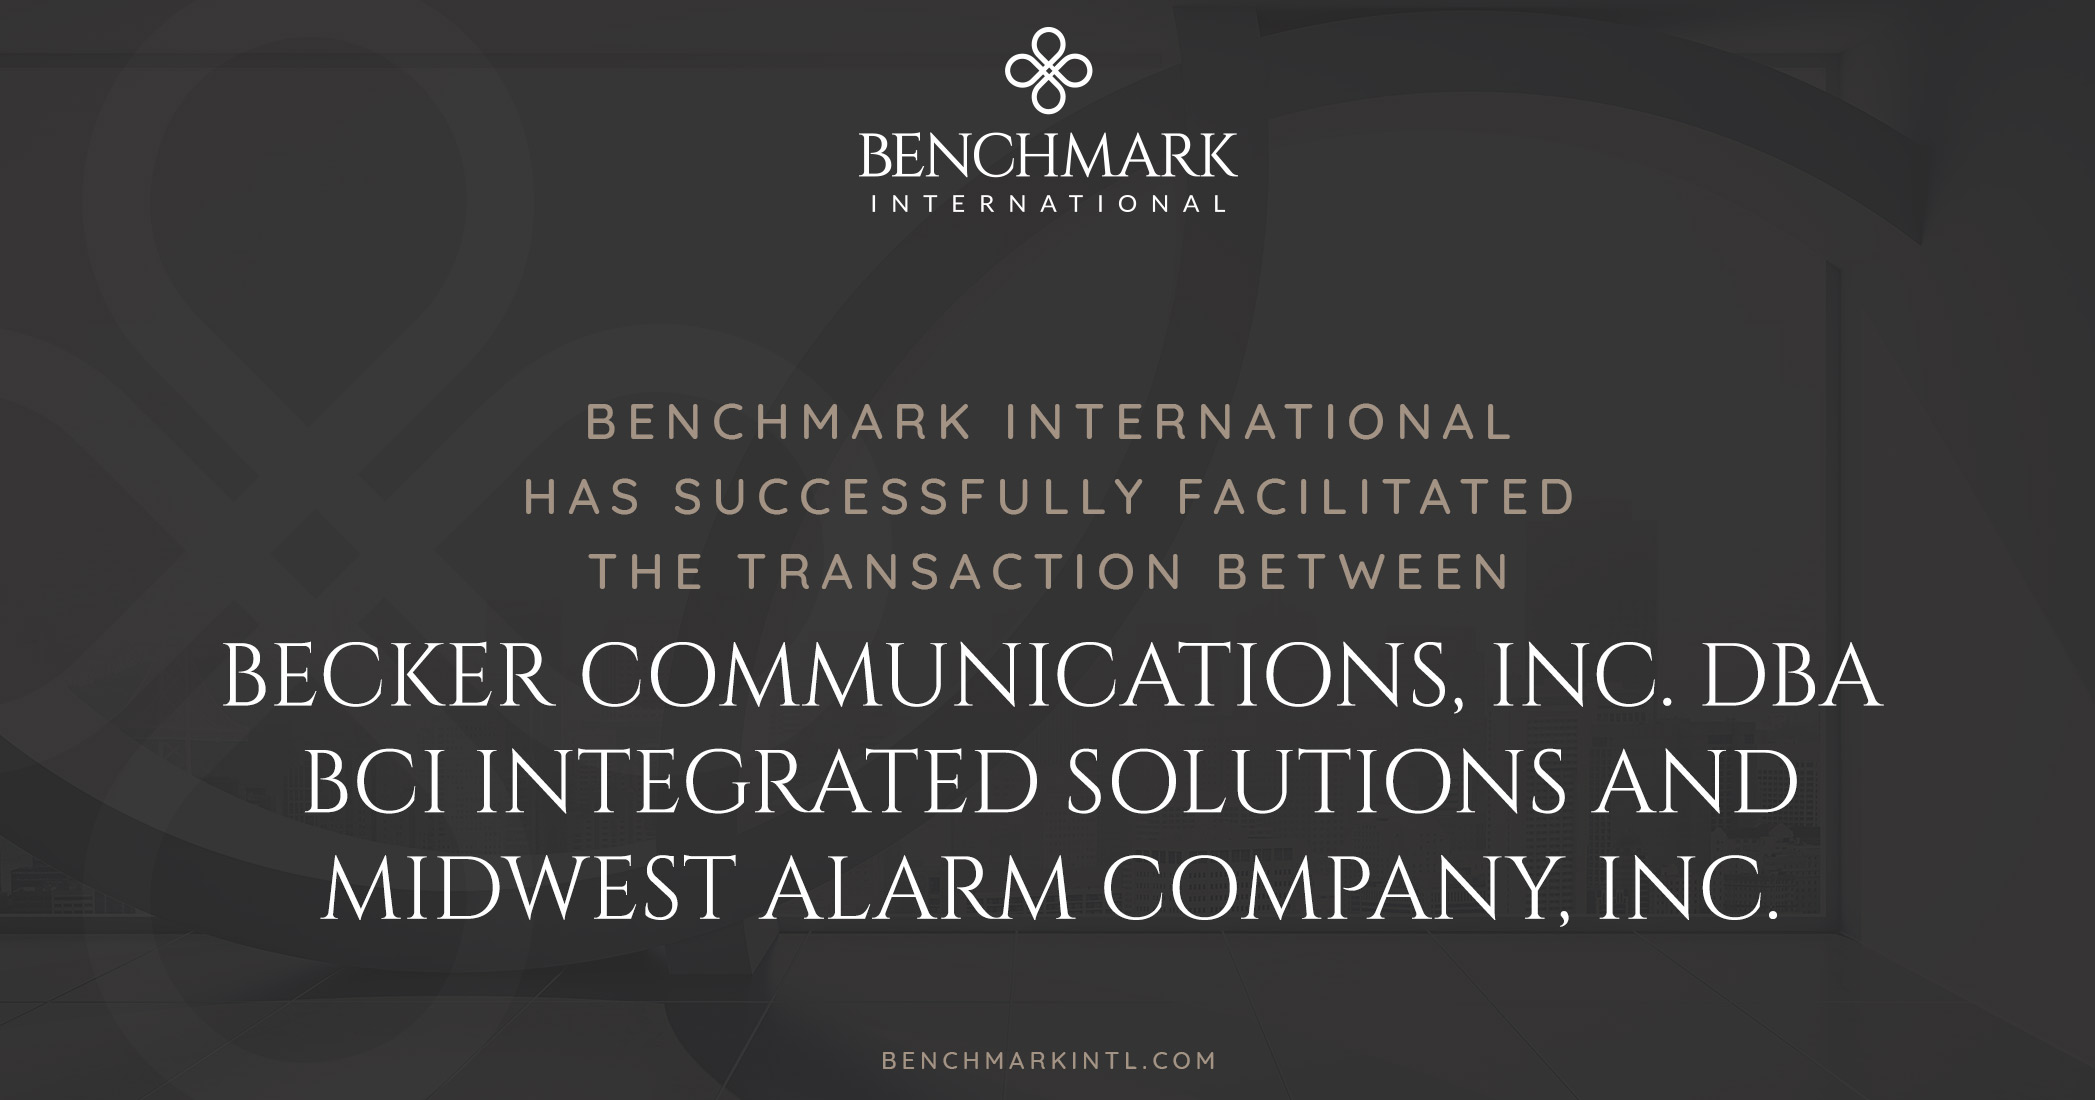 Benchmark International Has Successfully Facilitated the Transaction Between Becker Communications, Inc. DBA BCI Integrated Solutions and Midwest Alarm Company, Inc.